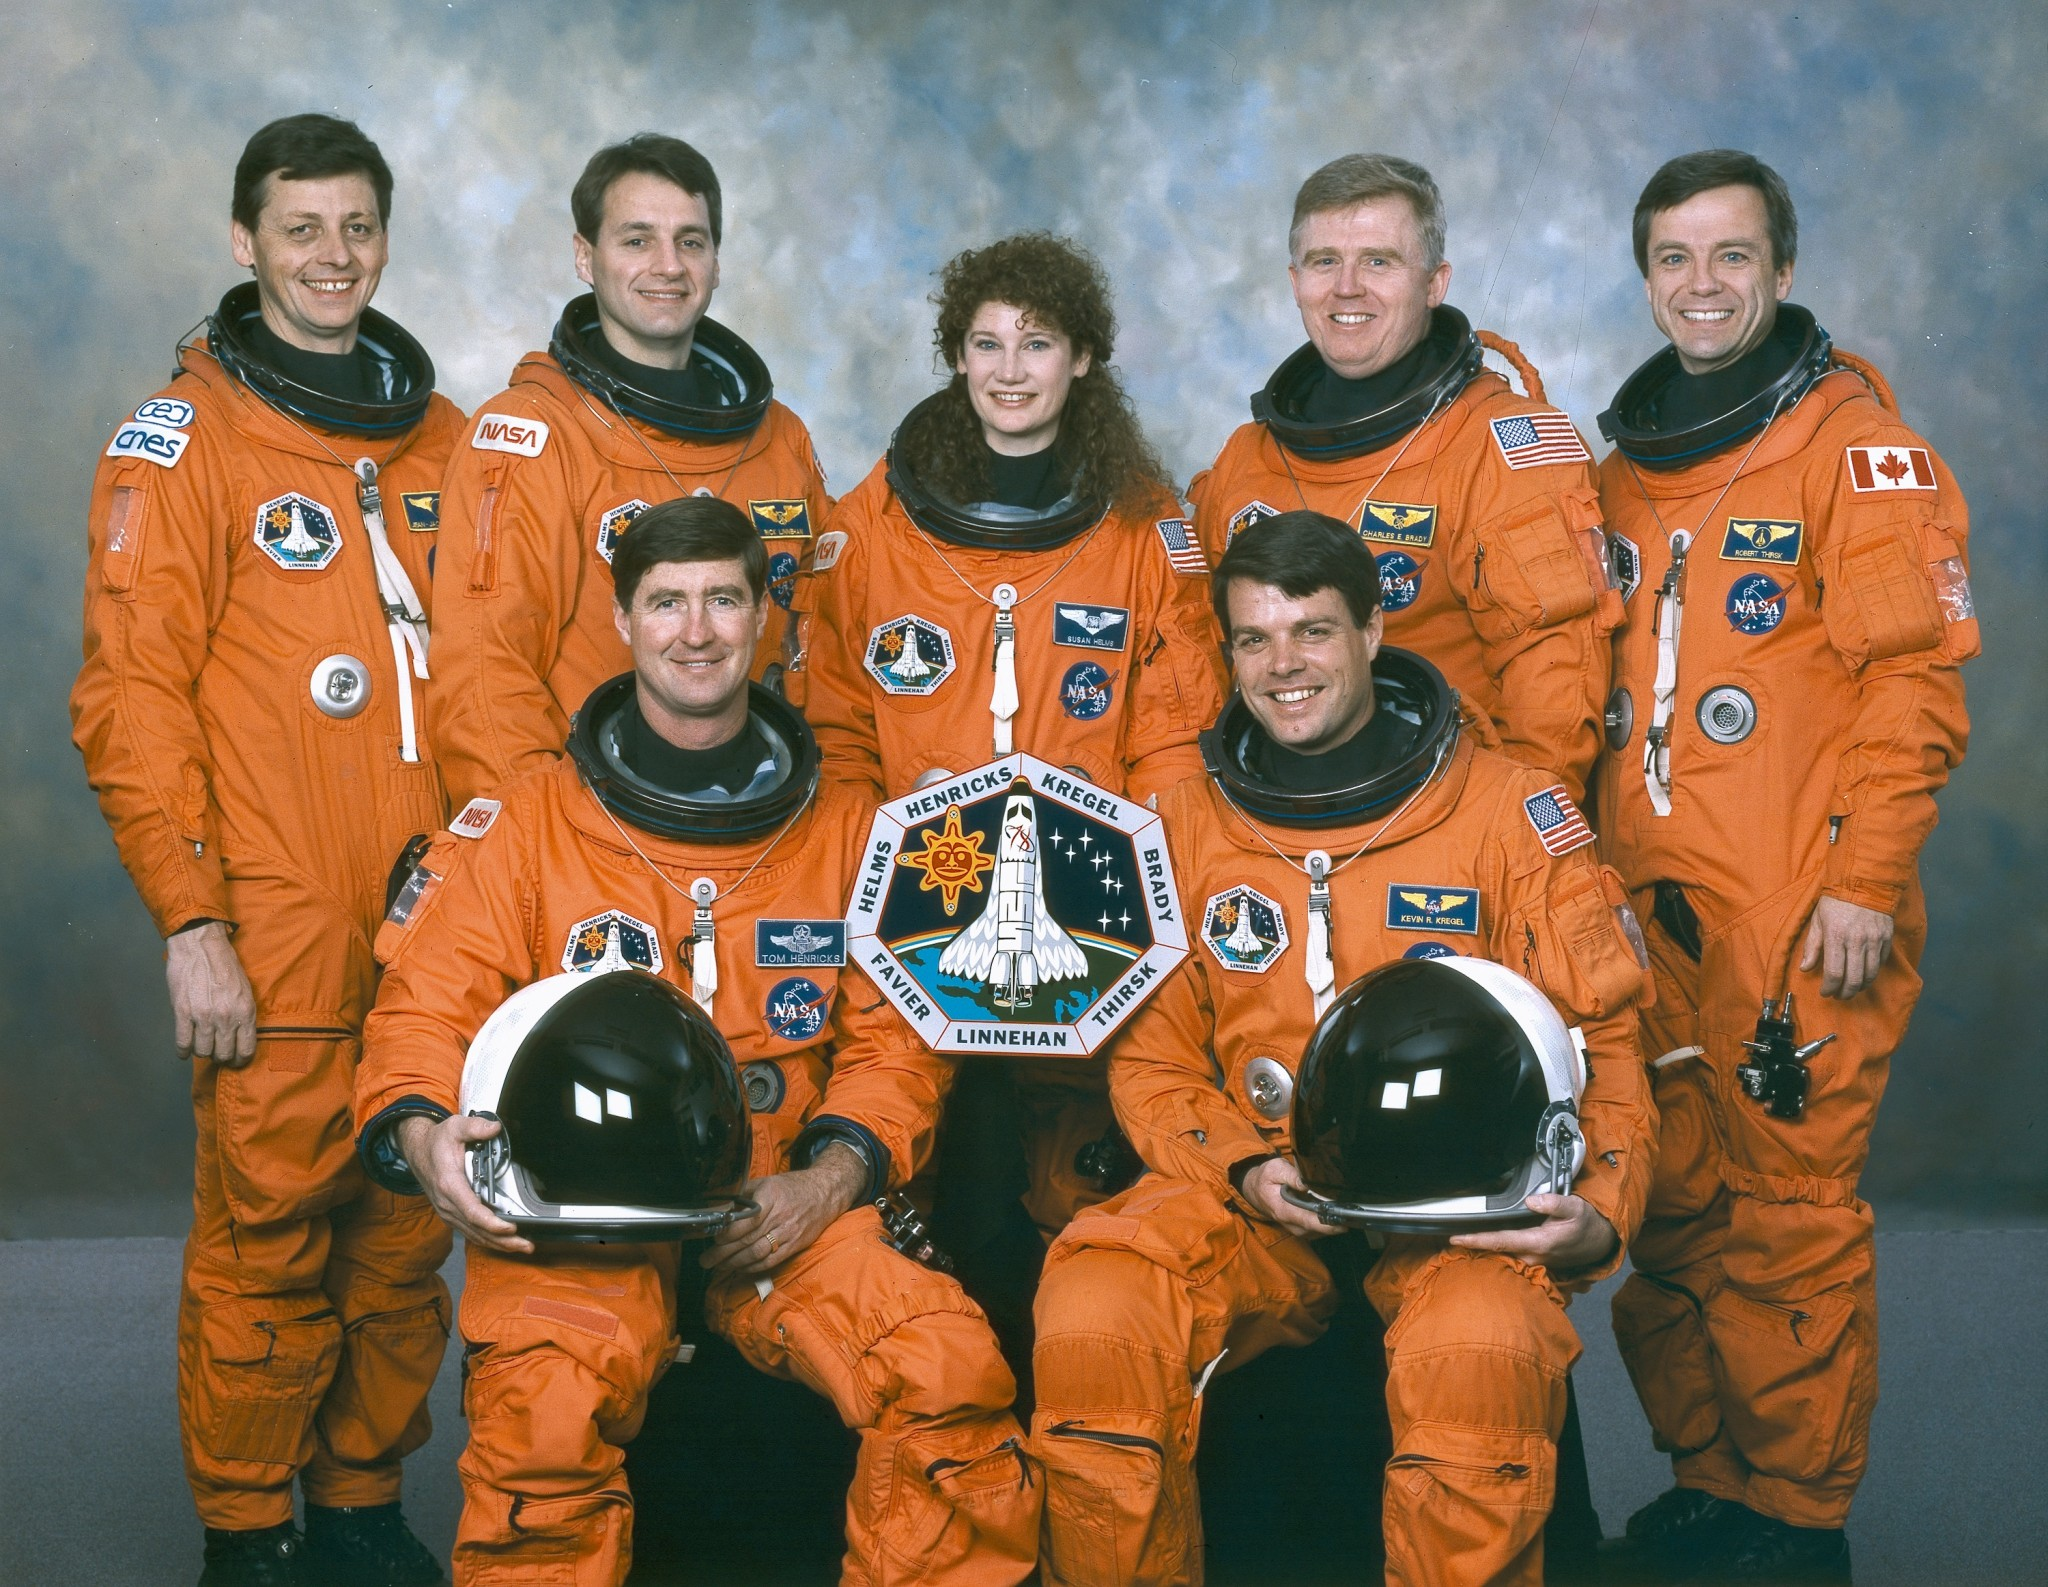 The crew of STS-78. Back, from left: Favier, Richard Linneham, Susan Helms, Charles Brady and Robert Brent Thirsk. Front, from left: Terrence Henricks and Kevin Kregel. Photo: NASA.